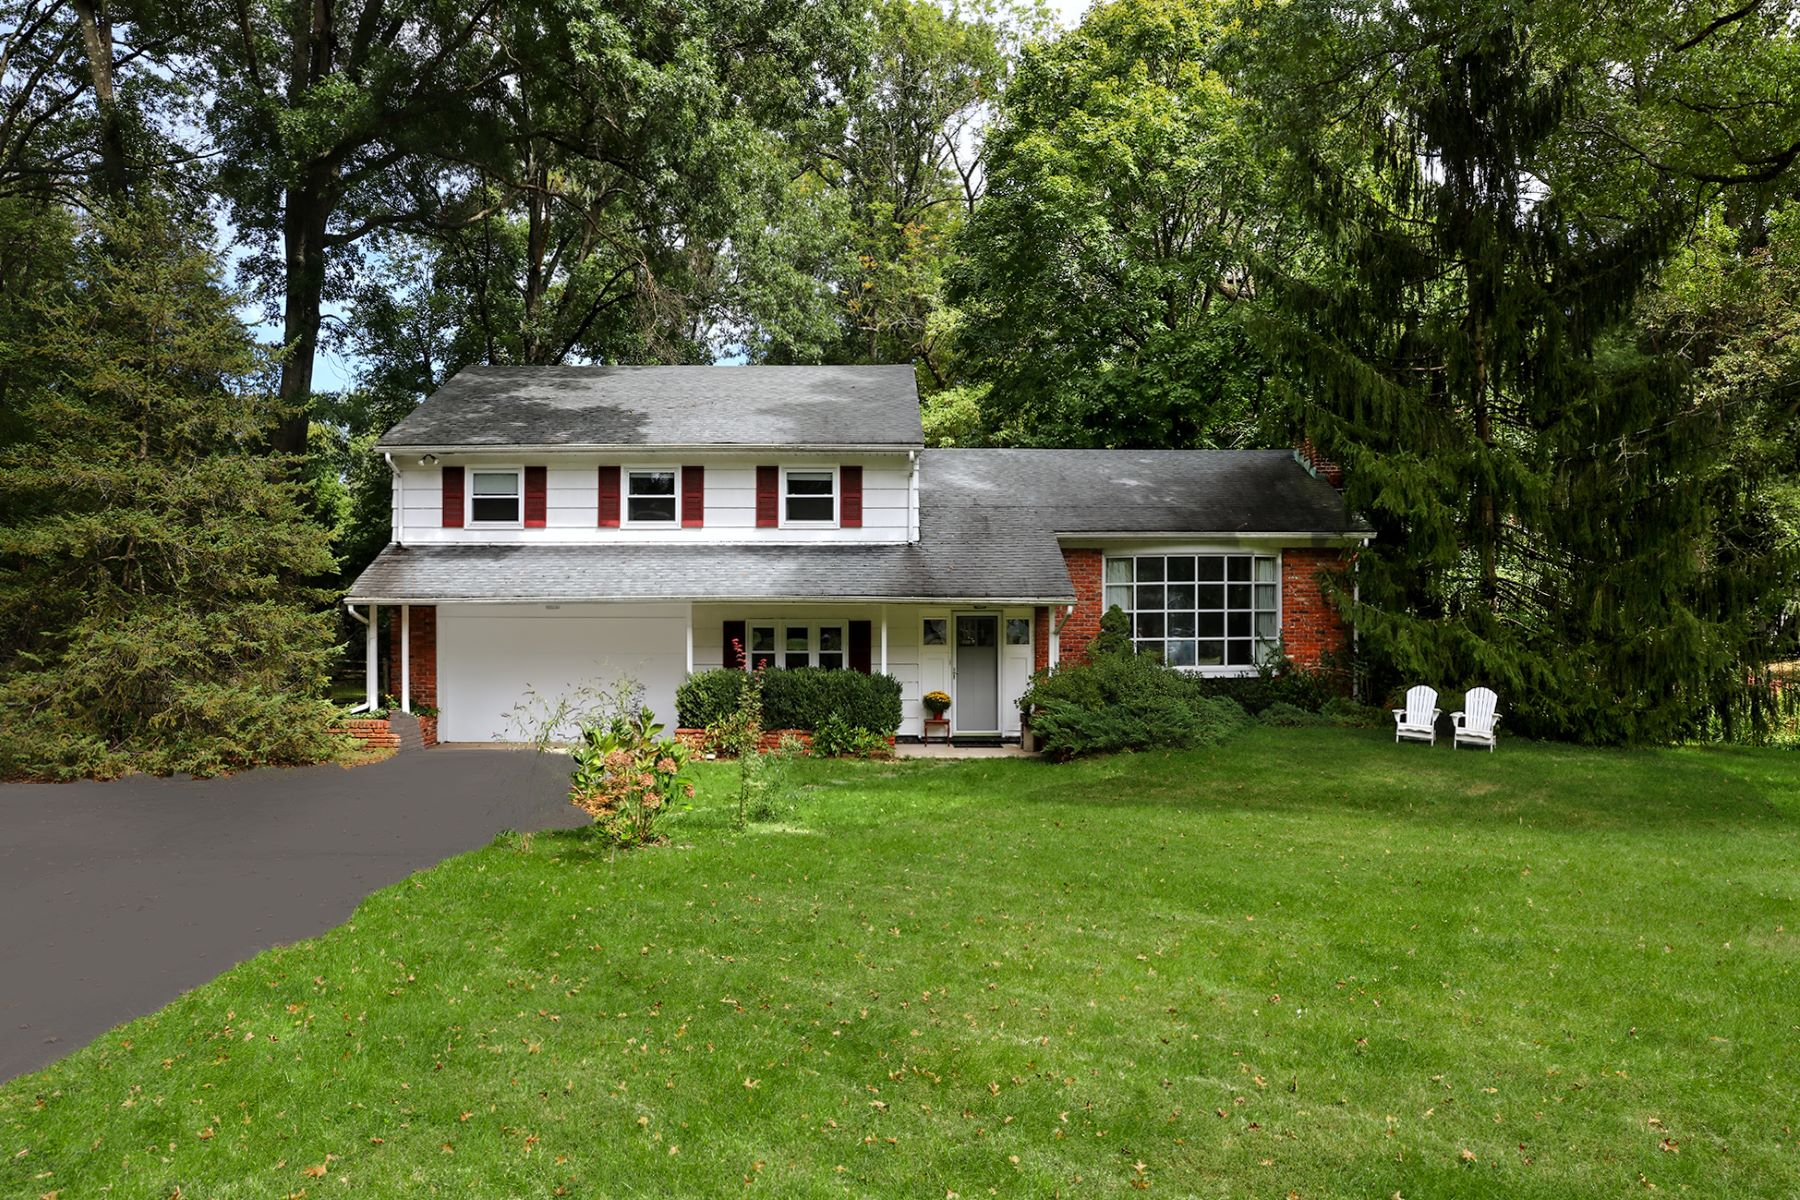 Property for Sale at This Sunny Littlebrook Home Feels Just Right! 67 Locust Lane, Princeton, New Jersey 08540 United States